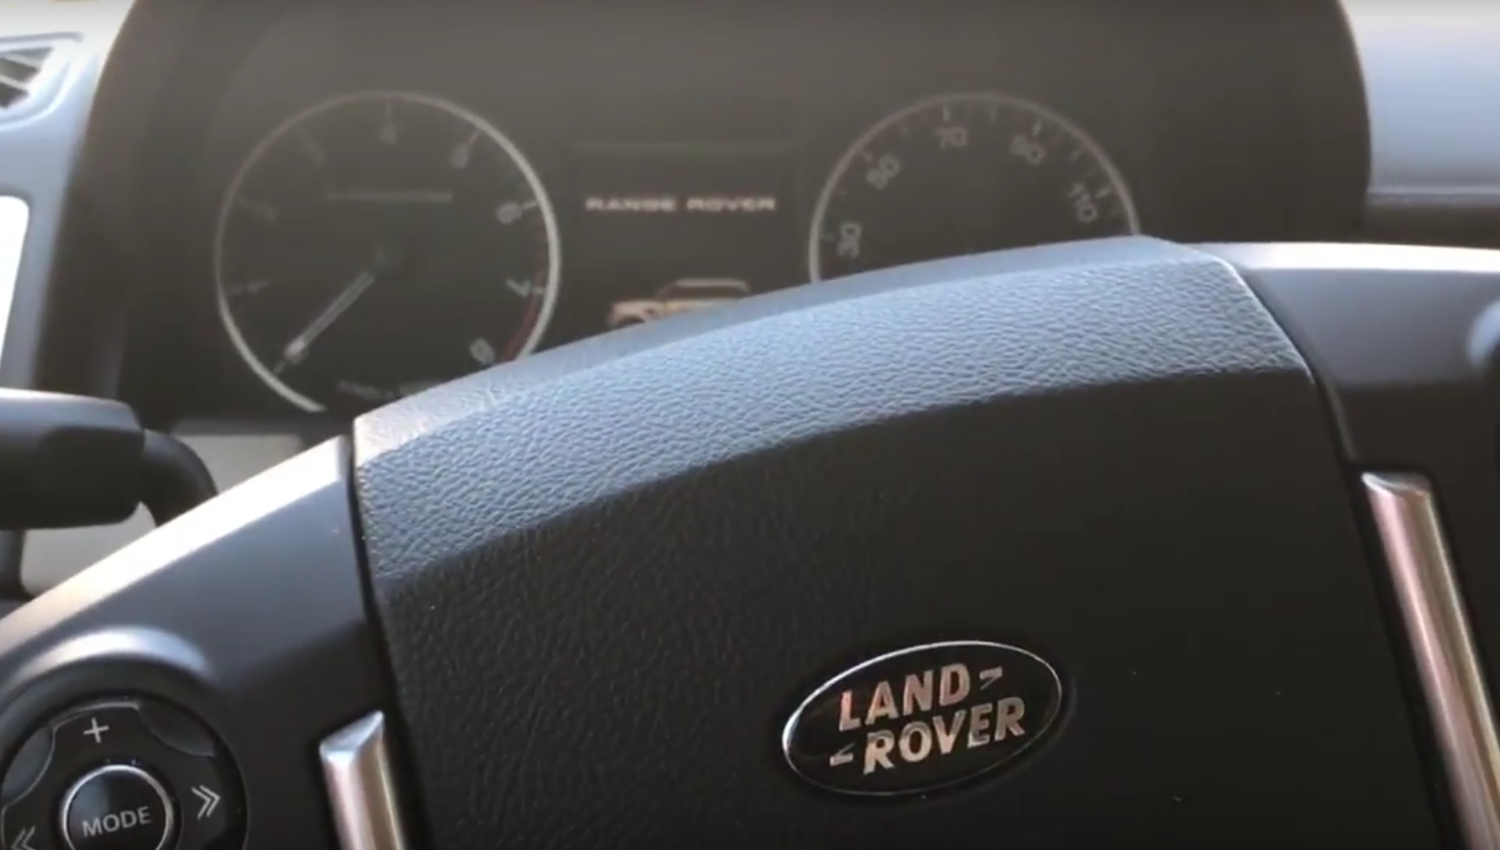 Rover range rover 2005 : How to Check the Oil Level on a 2005-2012 Range Rover Sport — How ...